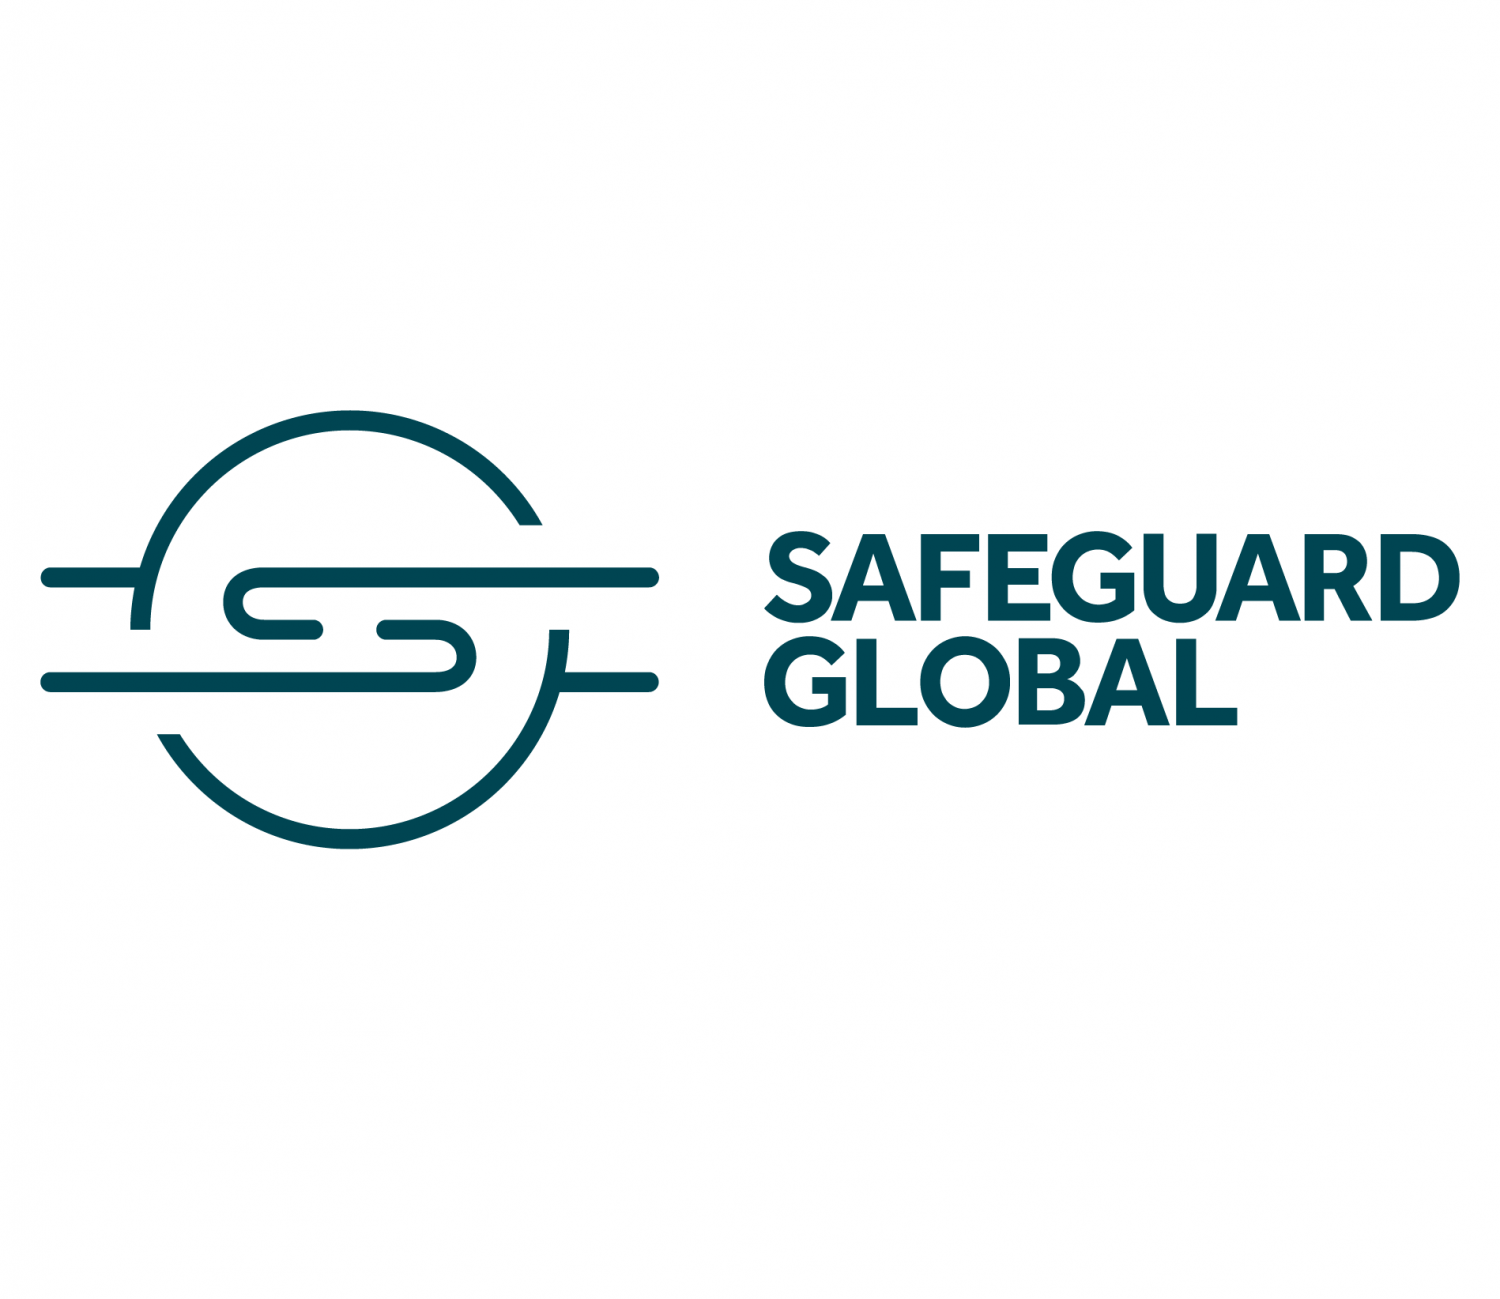 Safeguard Global Logo